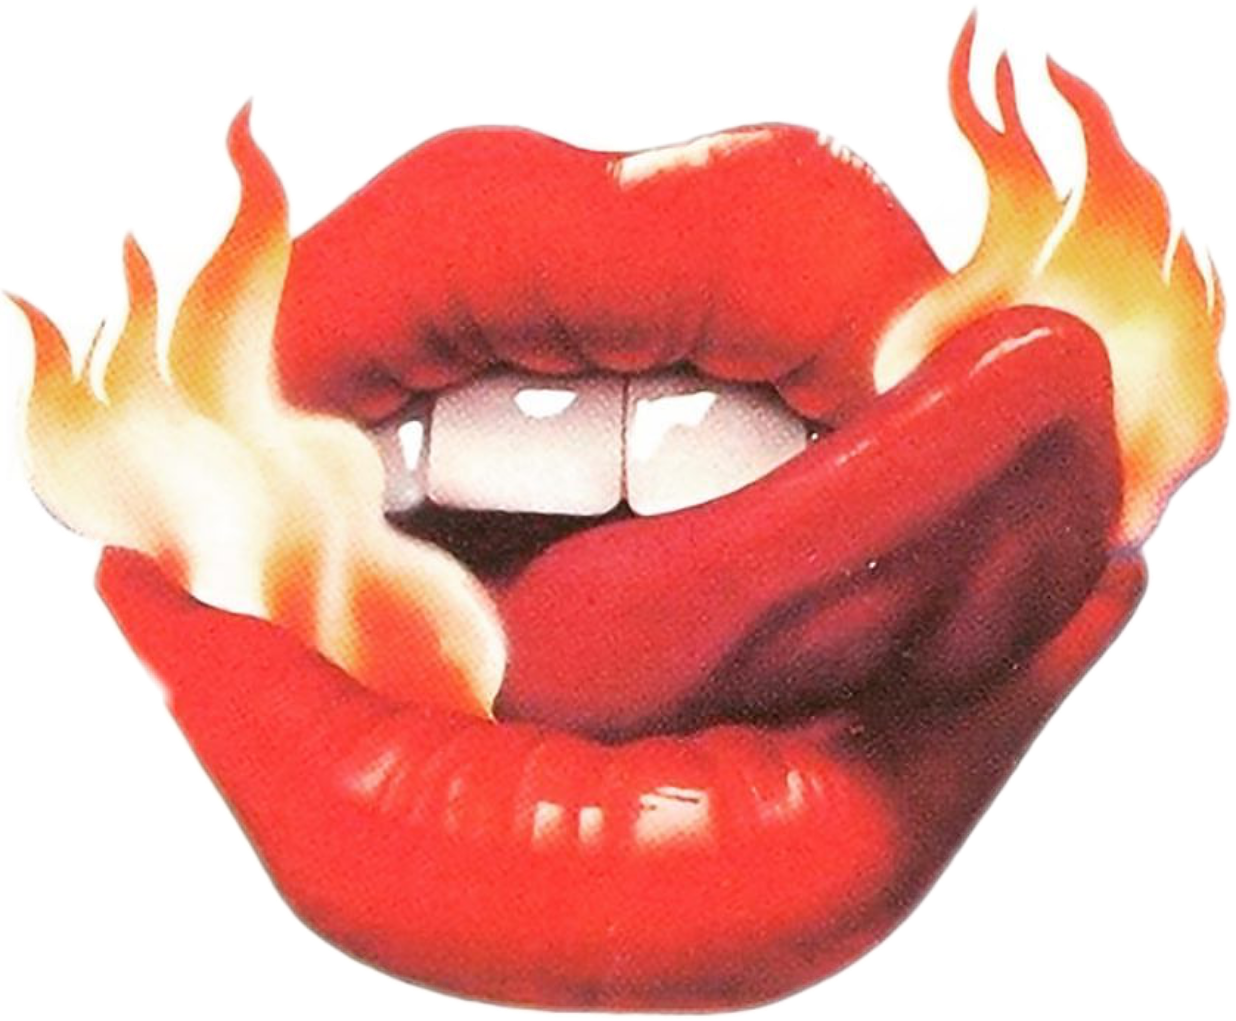 Lips red lickinglips licking. Flames clipart tongue